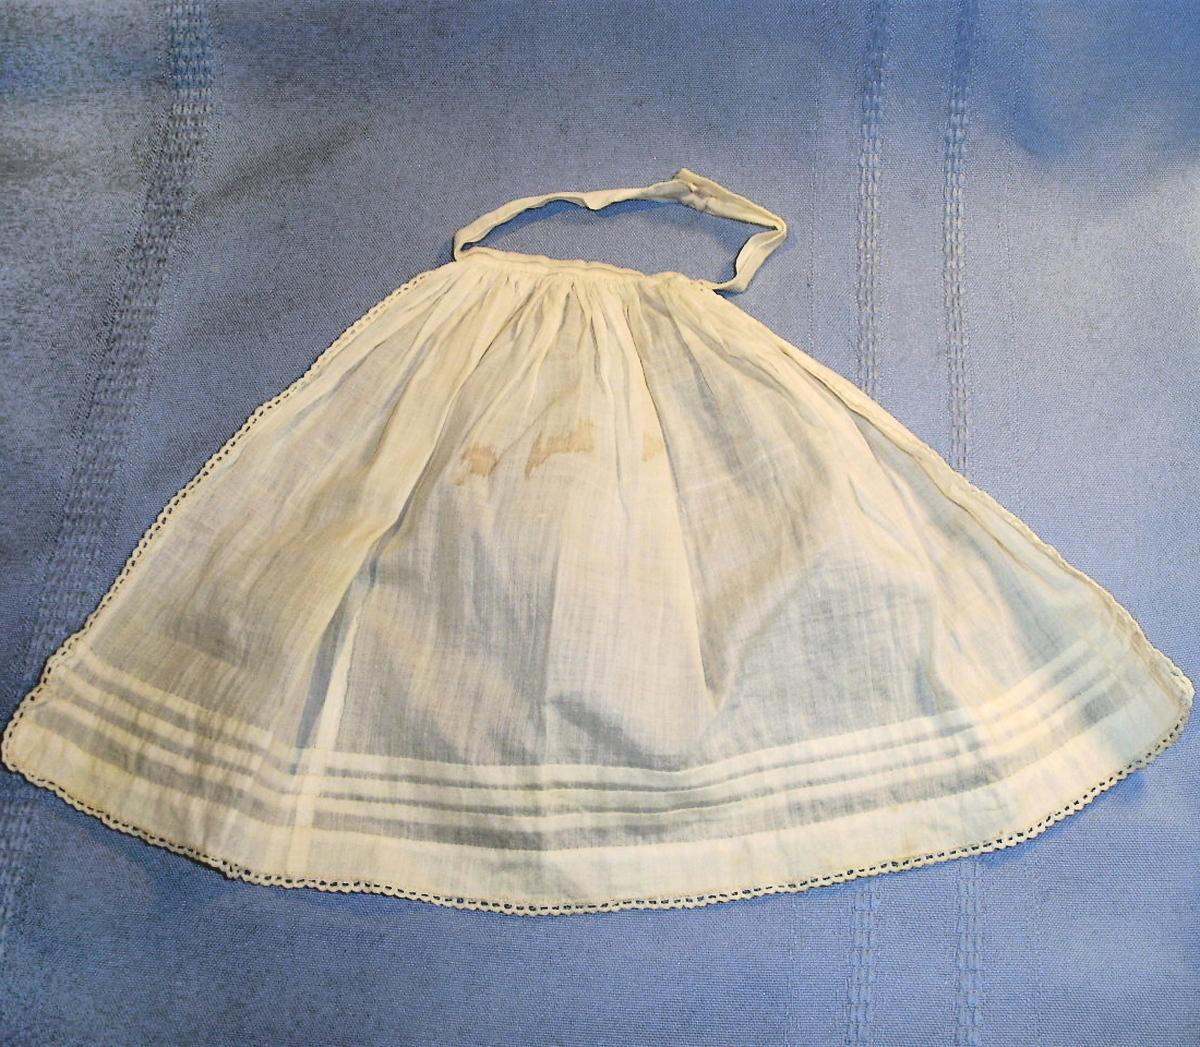 White apron lace trim - Roll Over Large Image To Magnify Click Large Image To Zoom